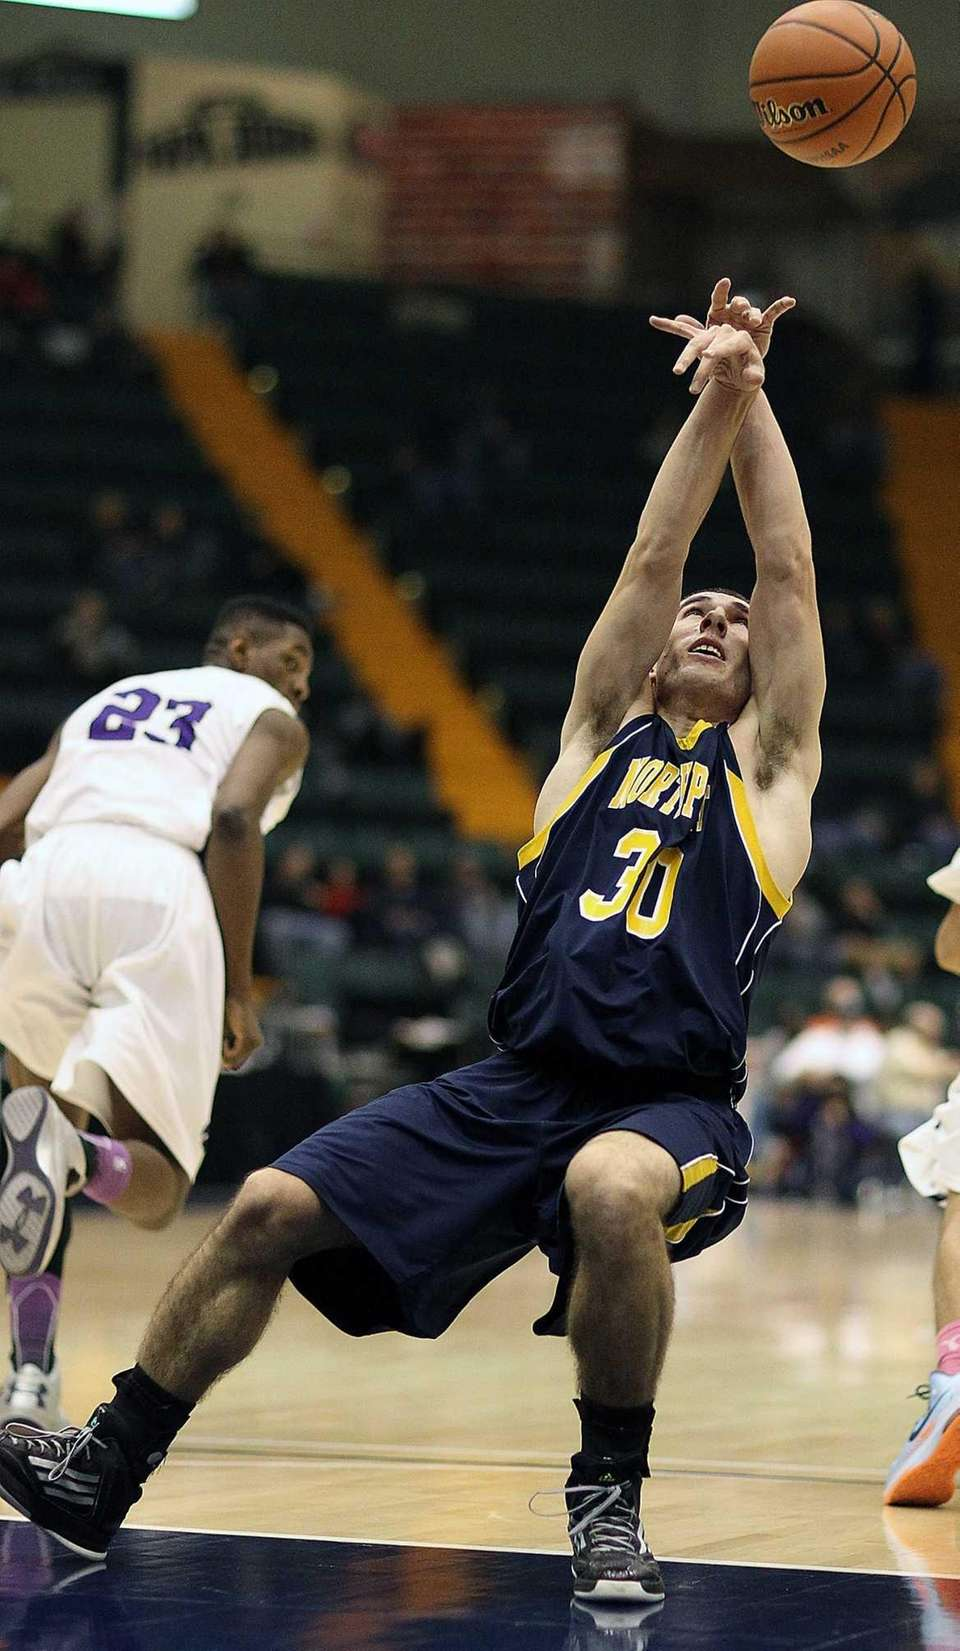 The ball bounces over the head of Northport's